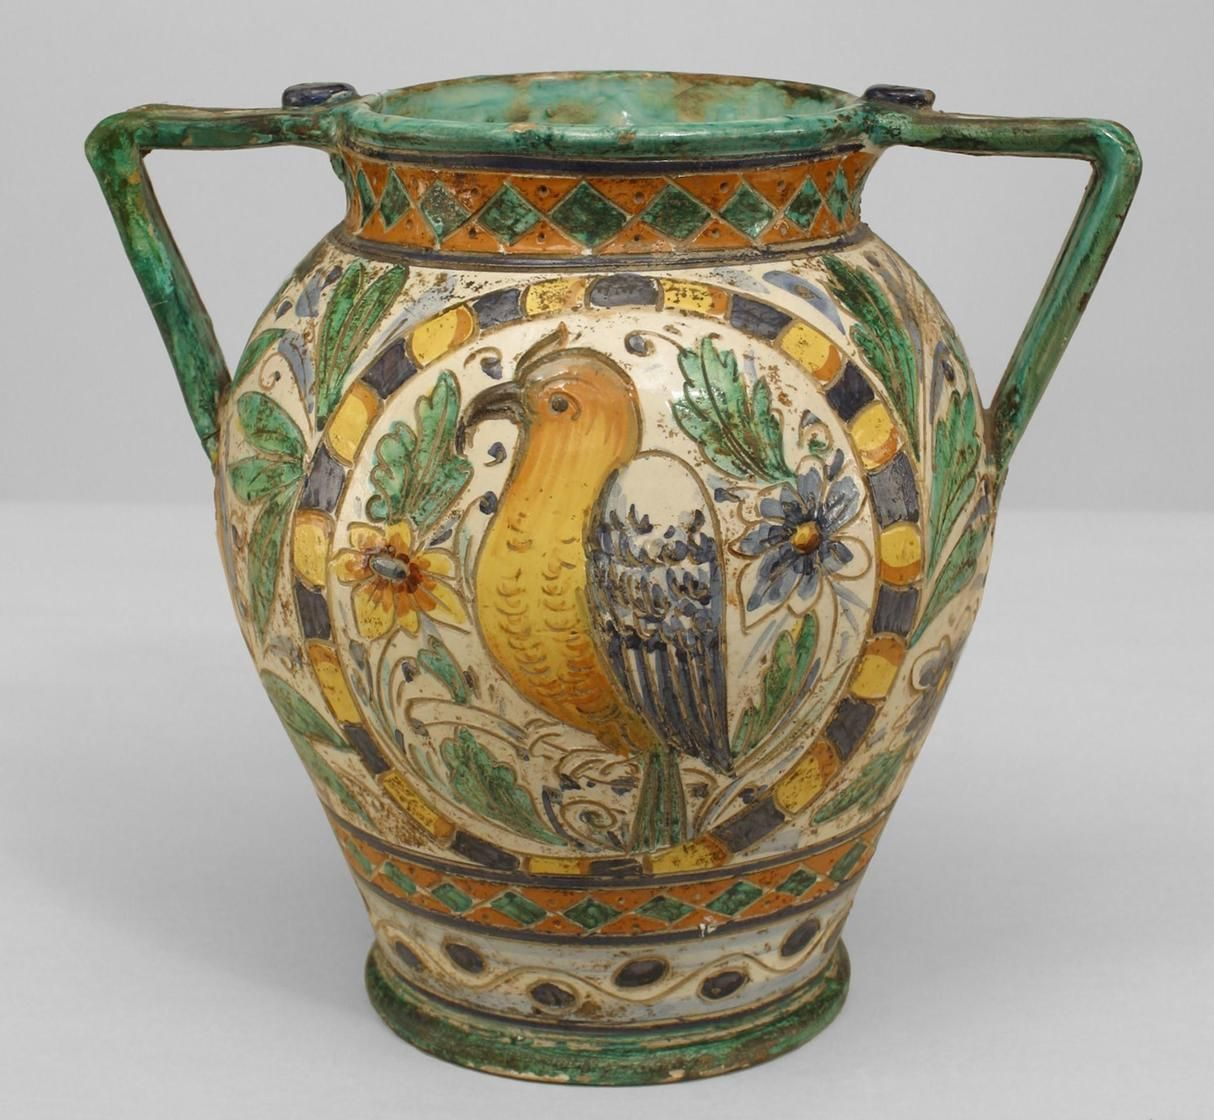 Httpnewelproductpid14843 vases amphoras italy italian neo classic antique majolica vase with side handles and decorated with blue yellow and green flowers fruit and bird reviewsmspy